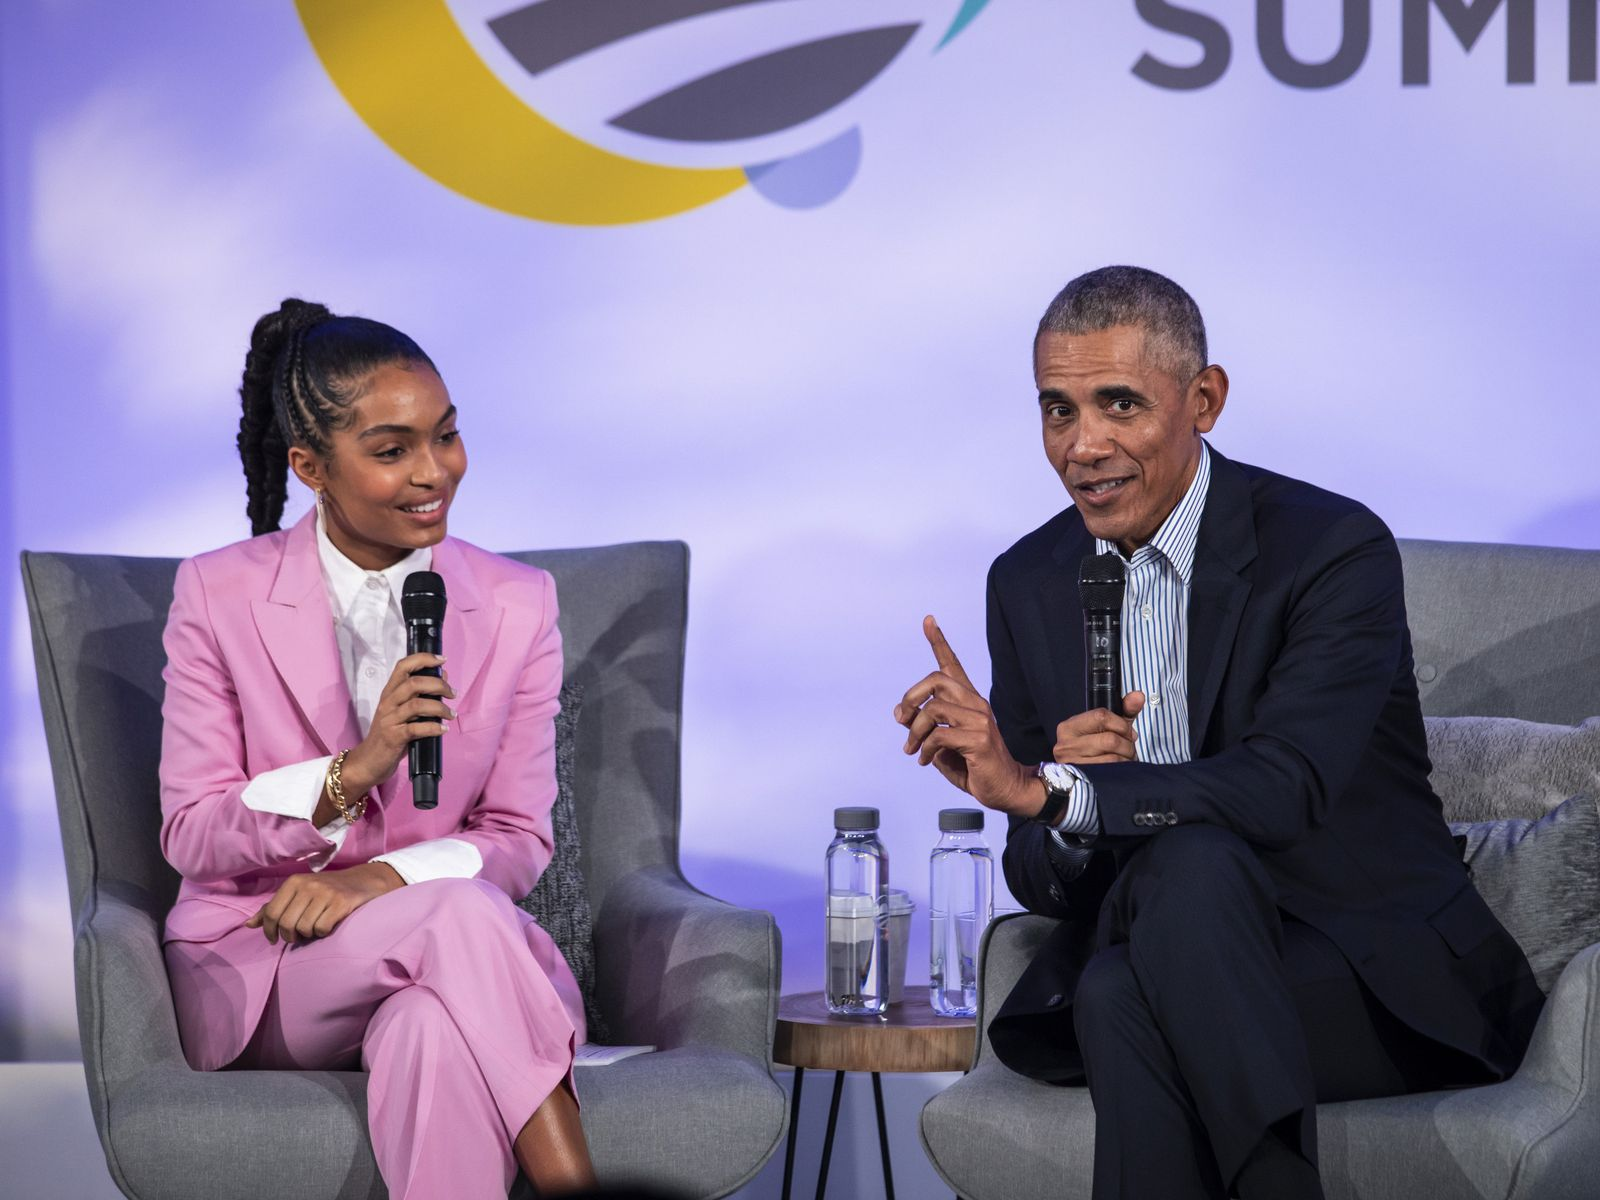 Obama Foundation Summit